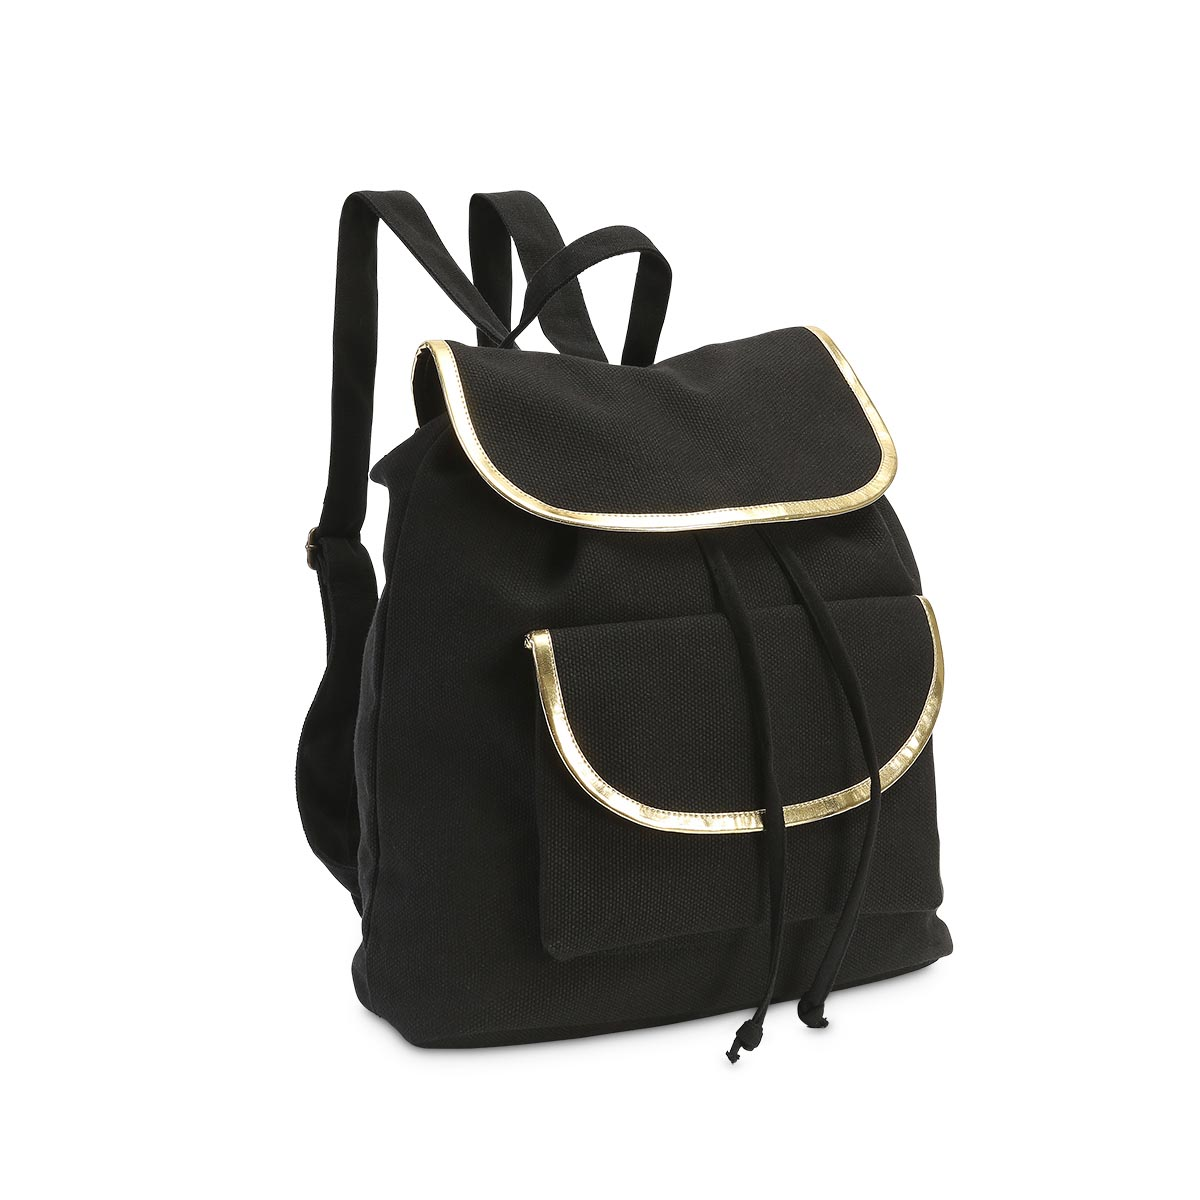 durry backpack black, gold trim